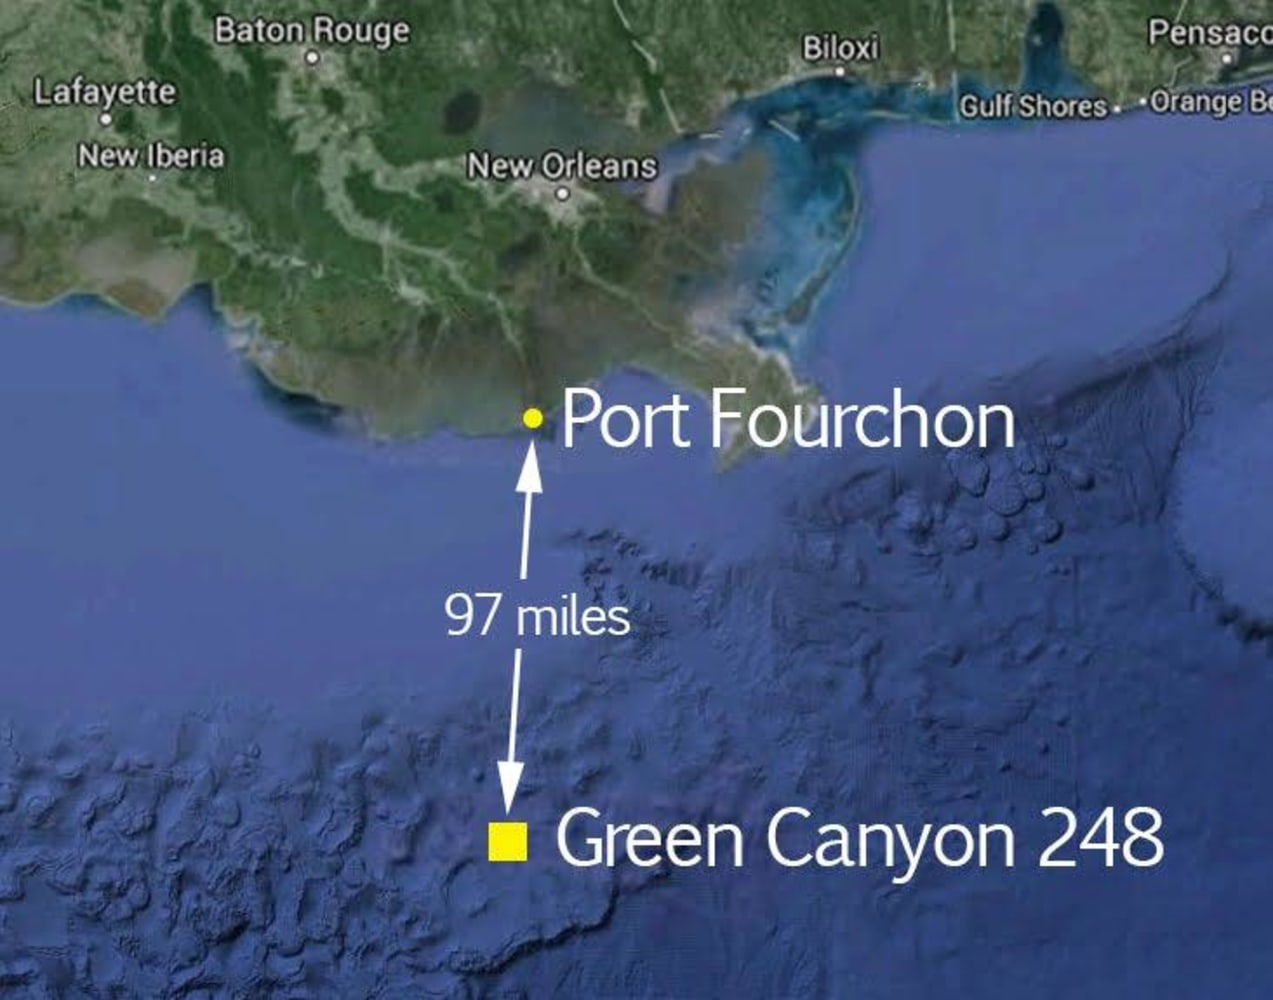 Tens of Thousands of Gallons of Crude Oil Spill Into Gulf of